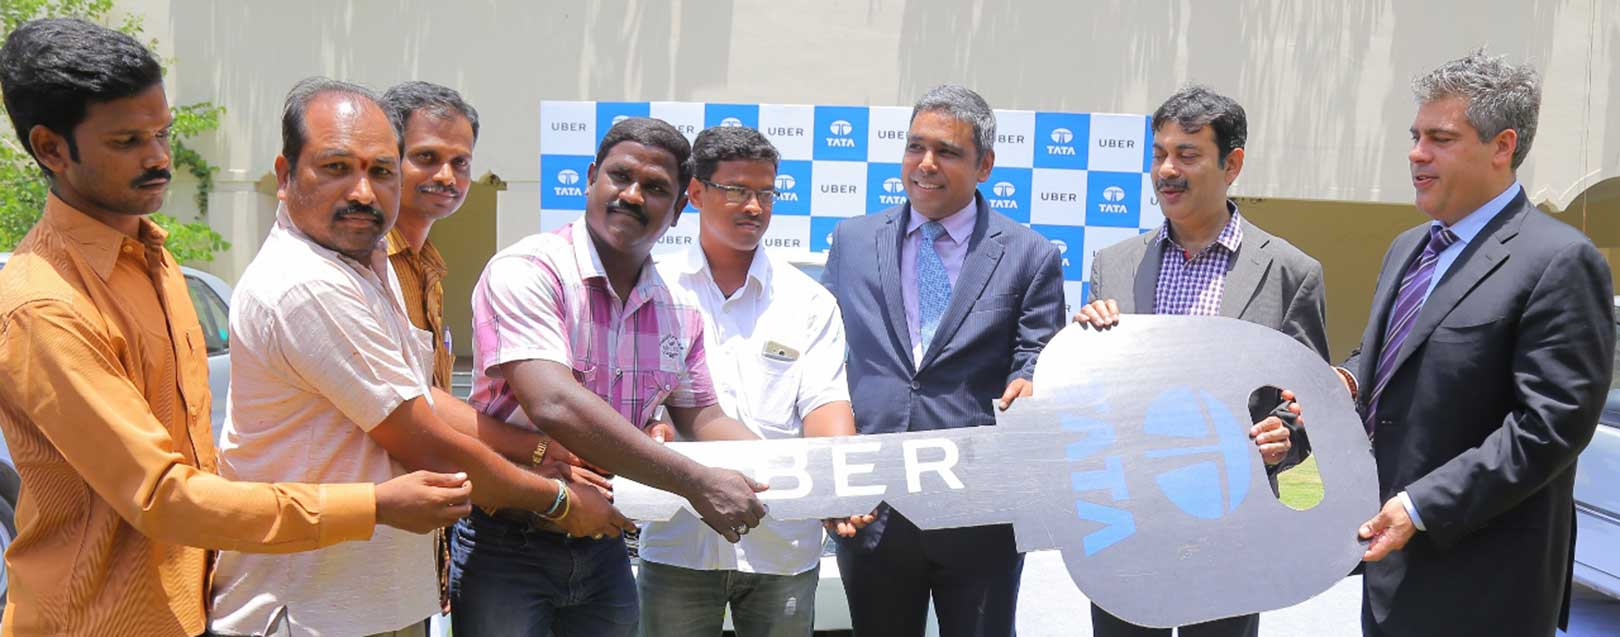 India ranks 2nd in global cab service market: Uber